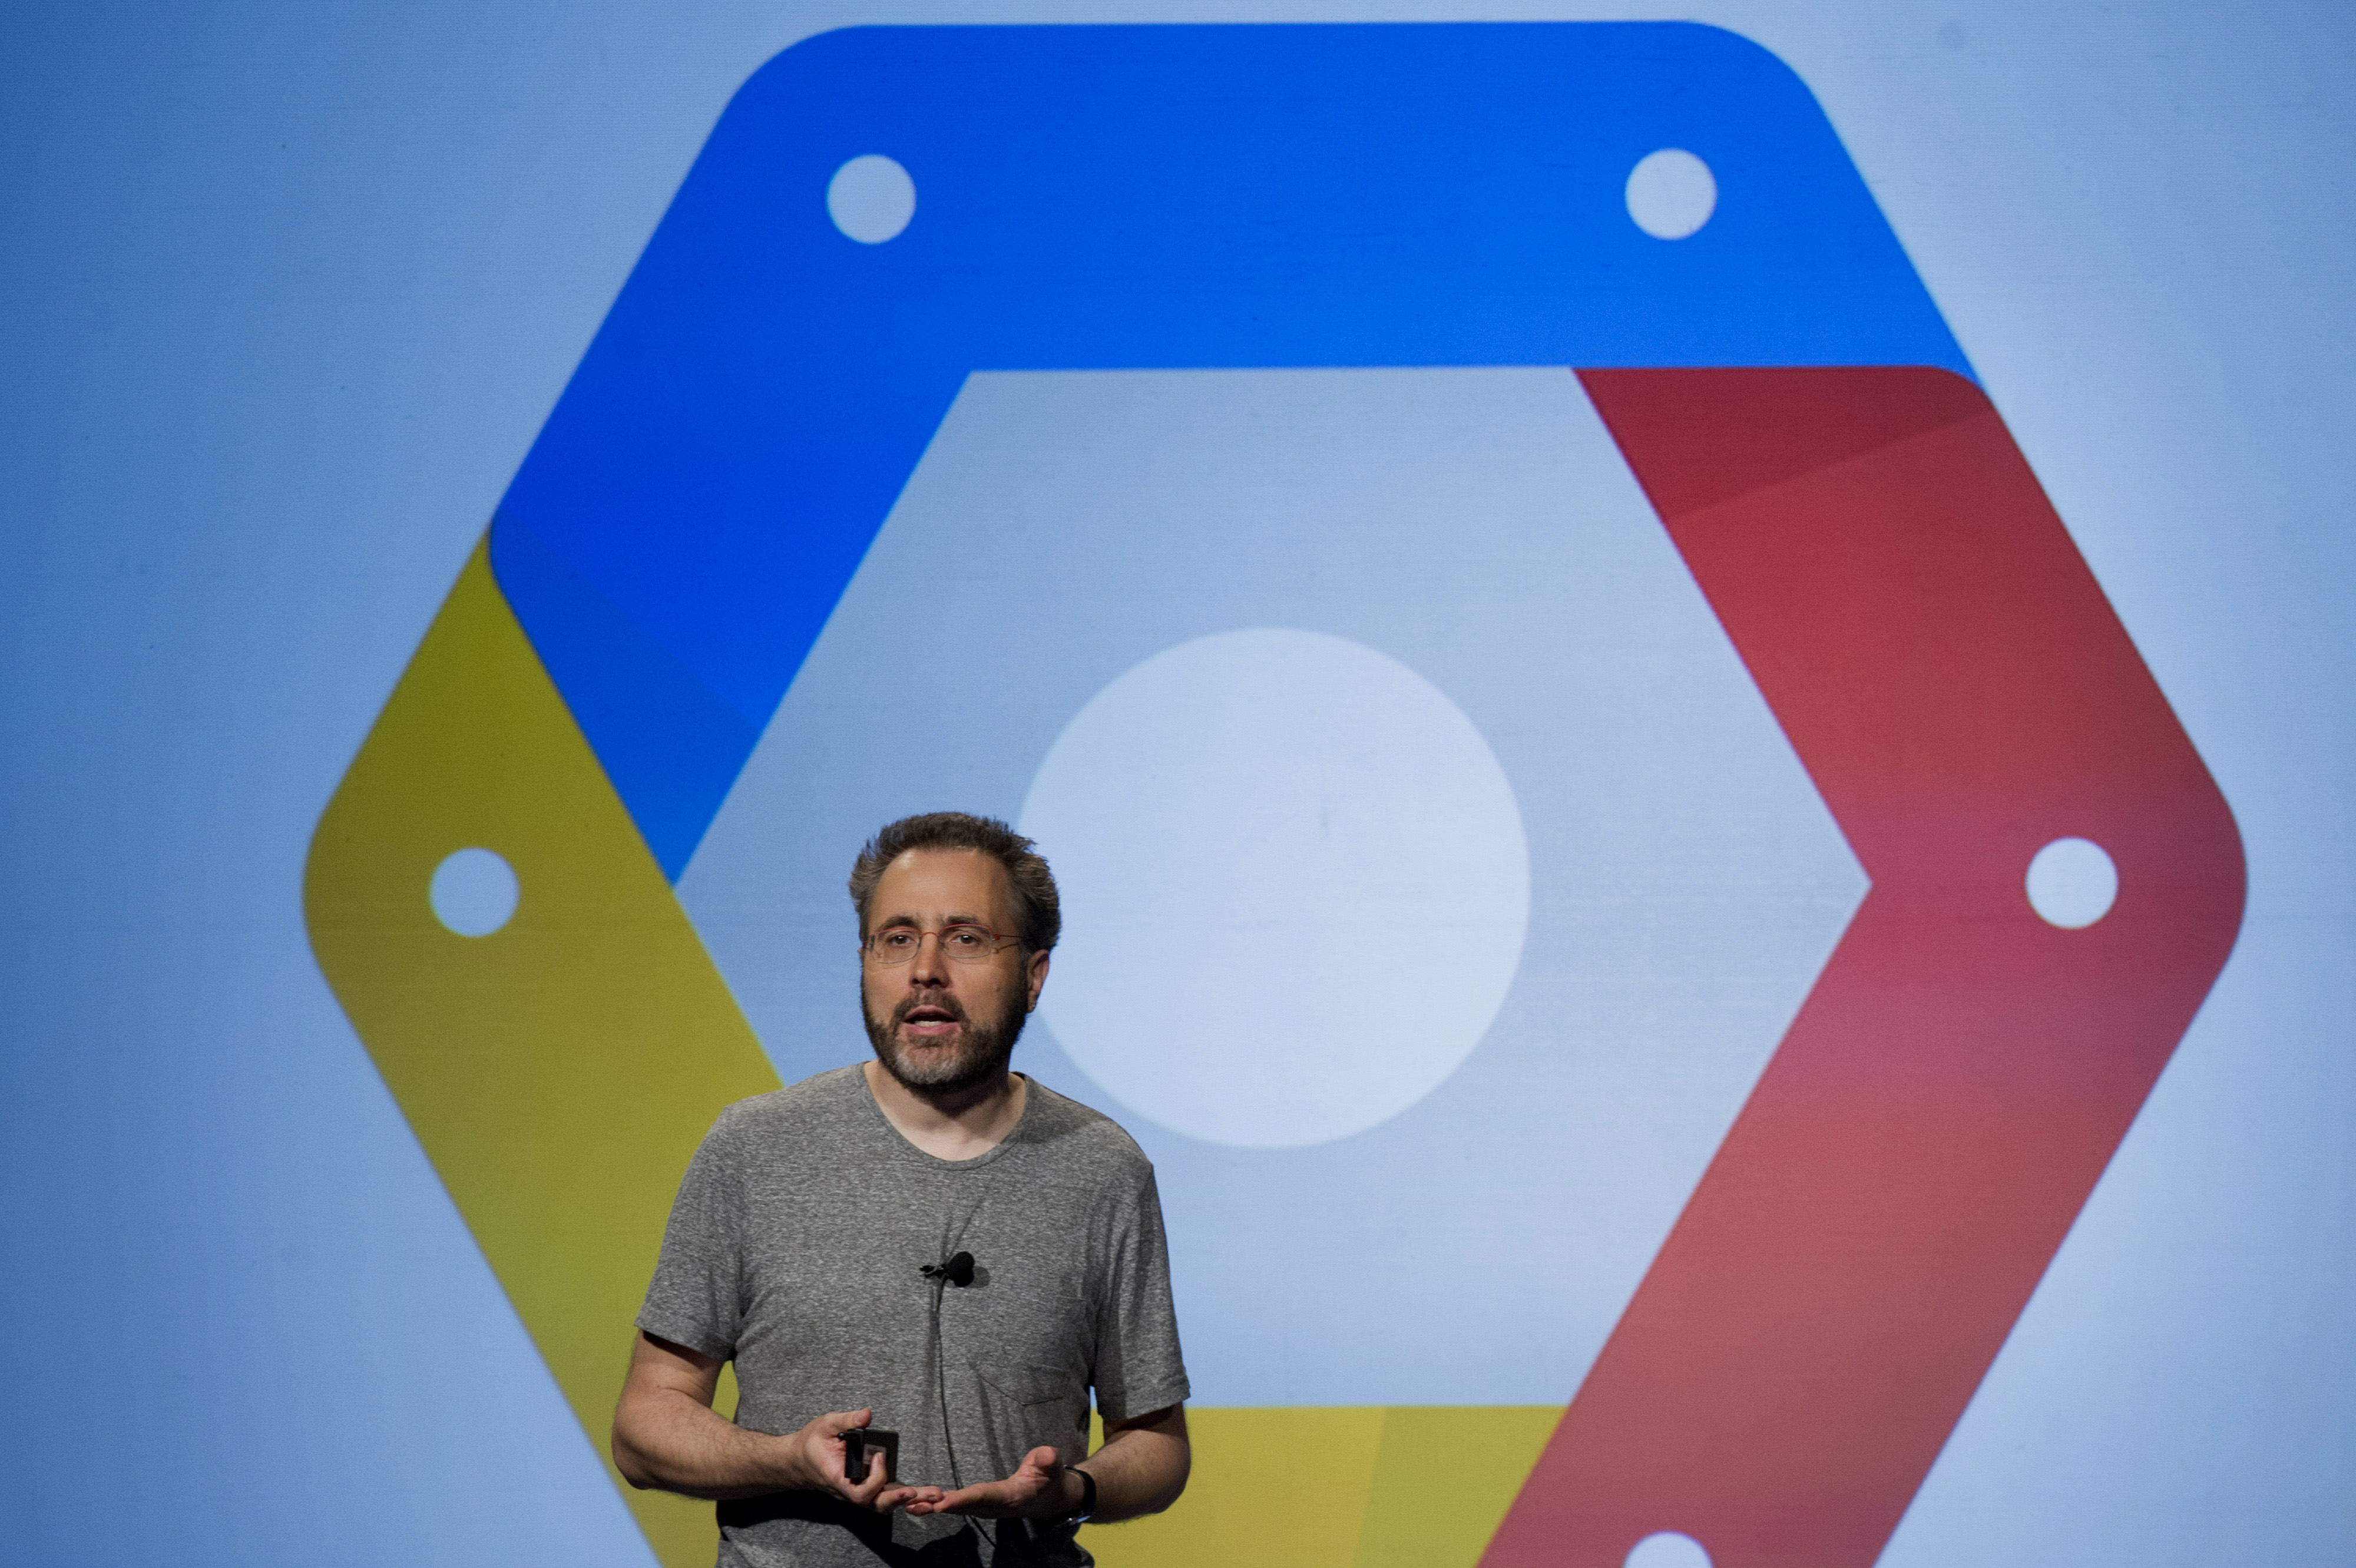 Google Cloud Platform cuts the price of GPUs by up to 36